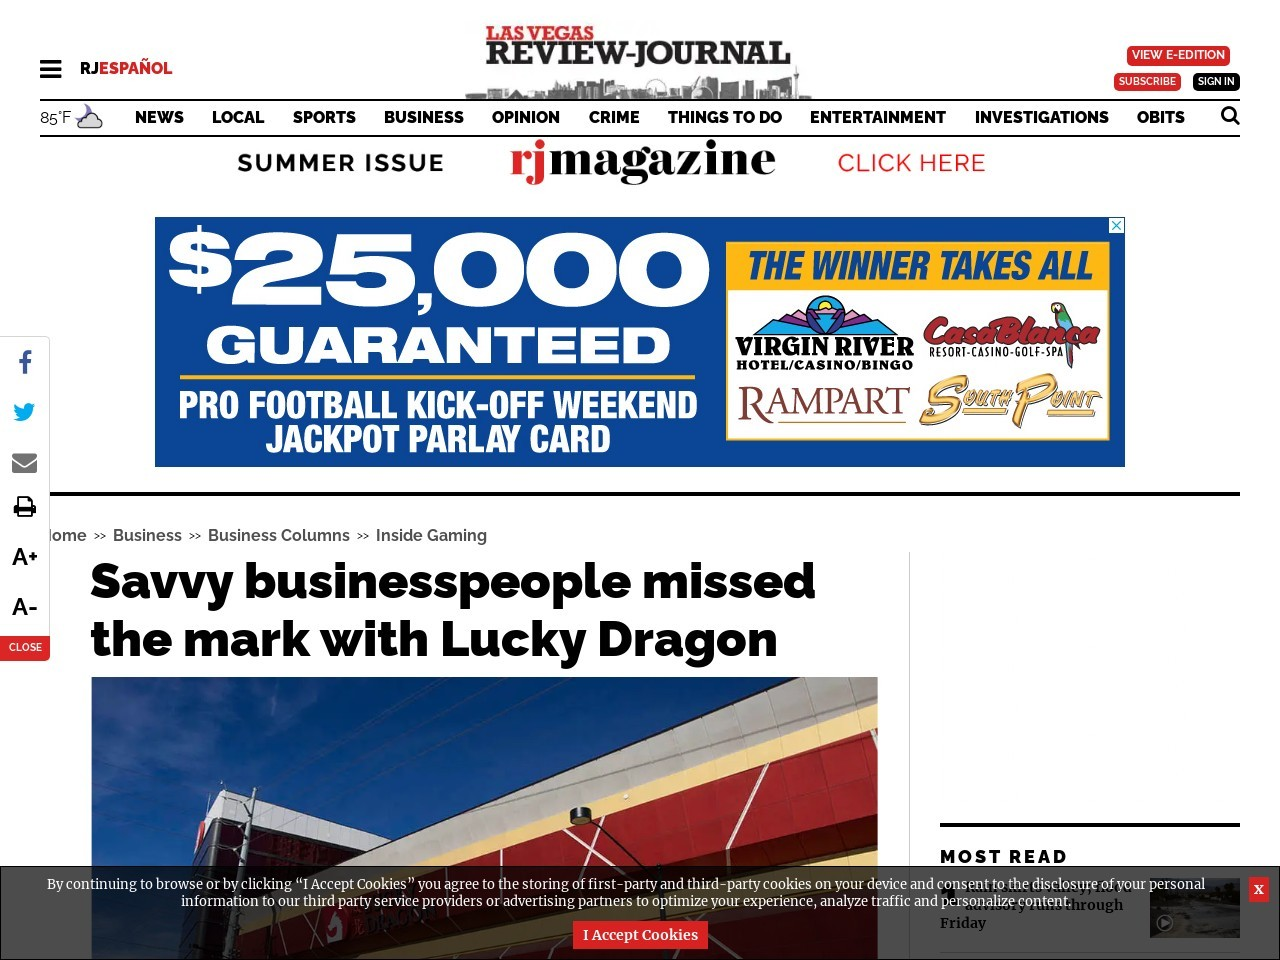 Savvy businesspeople missed the mark with Lucky Dragon